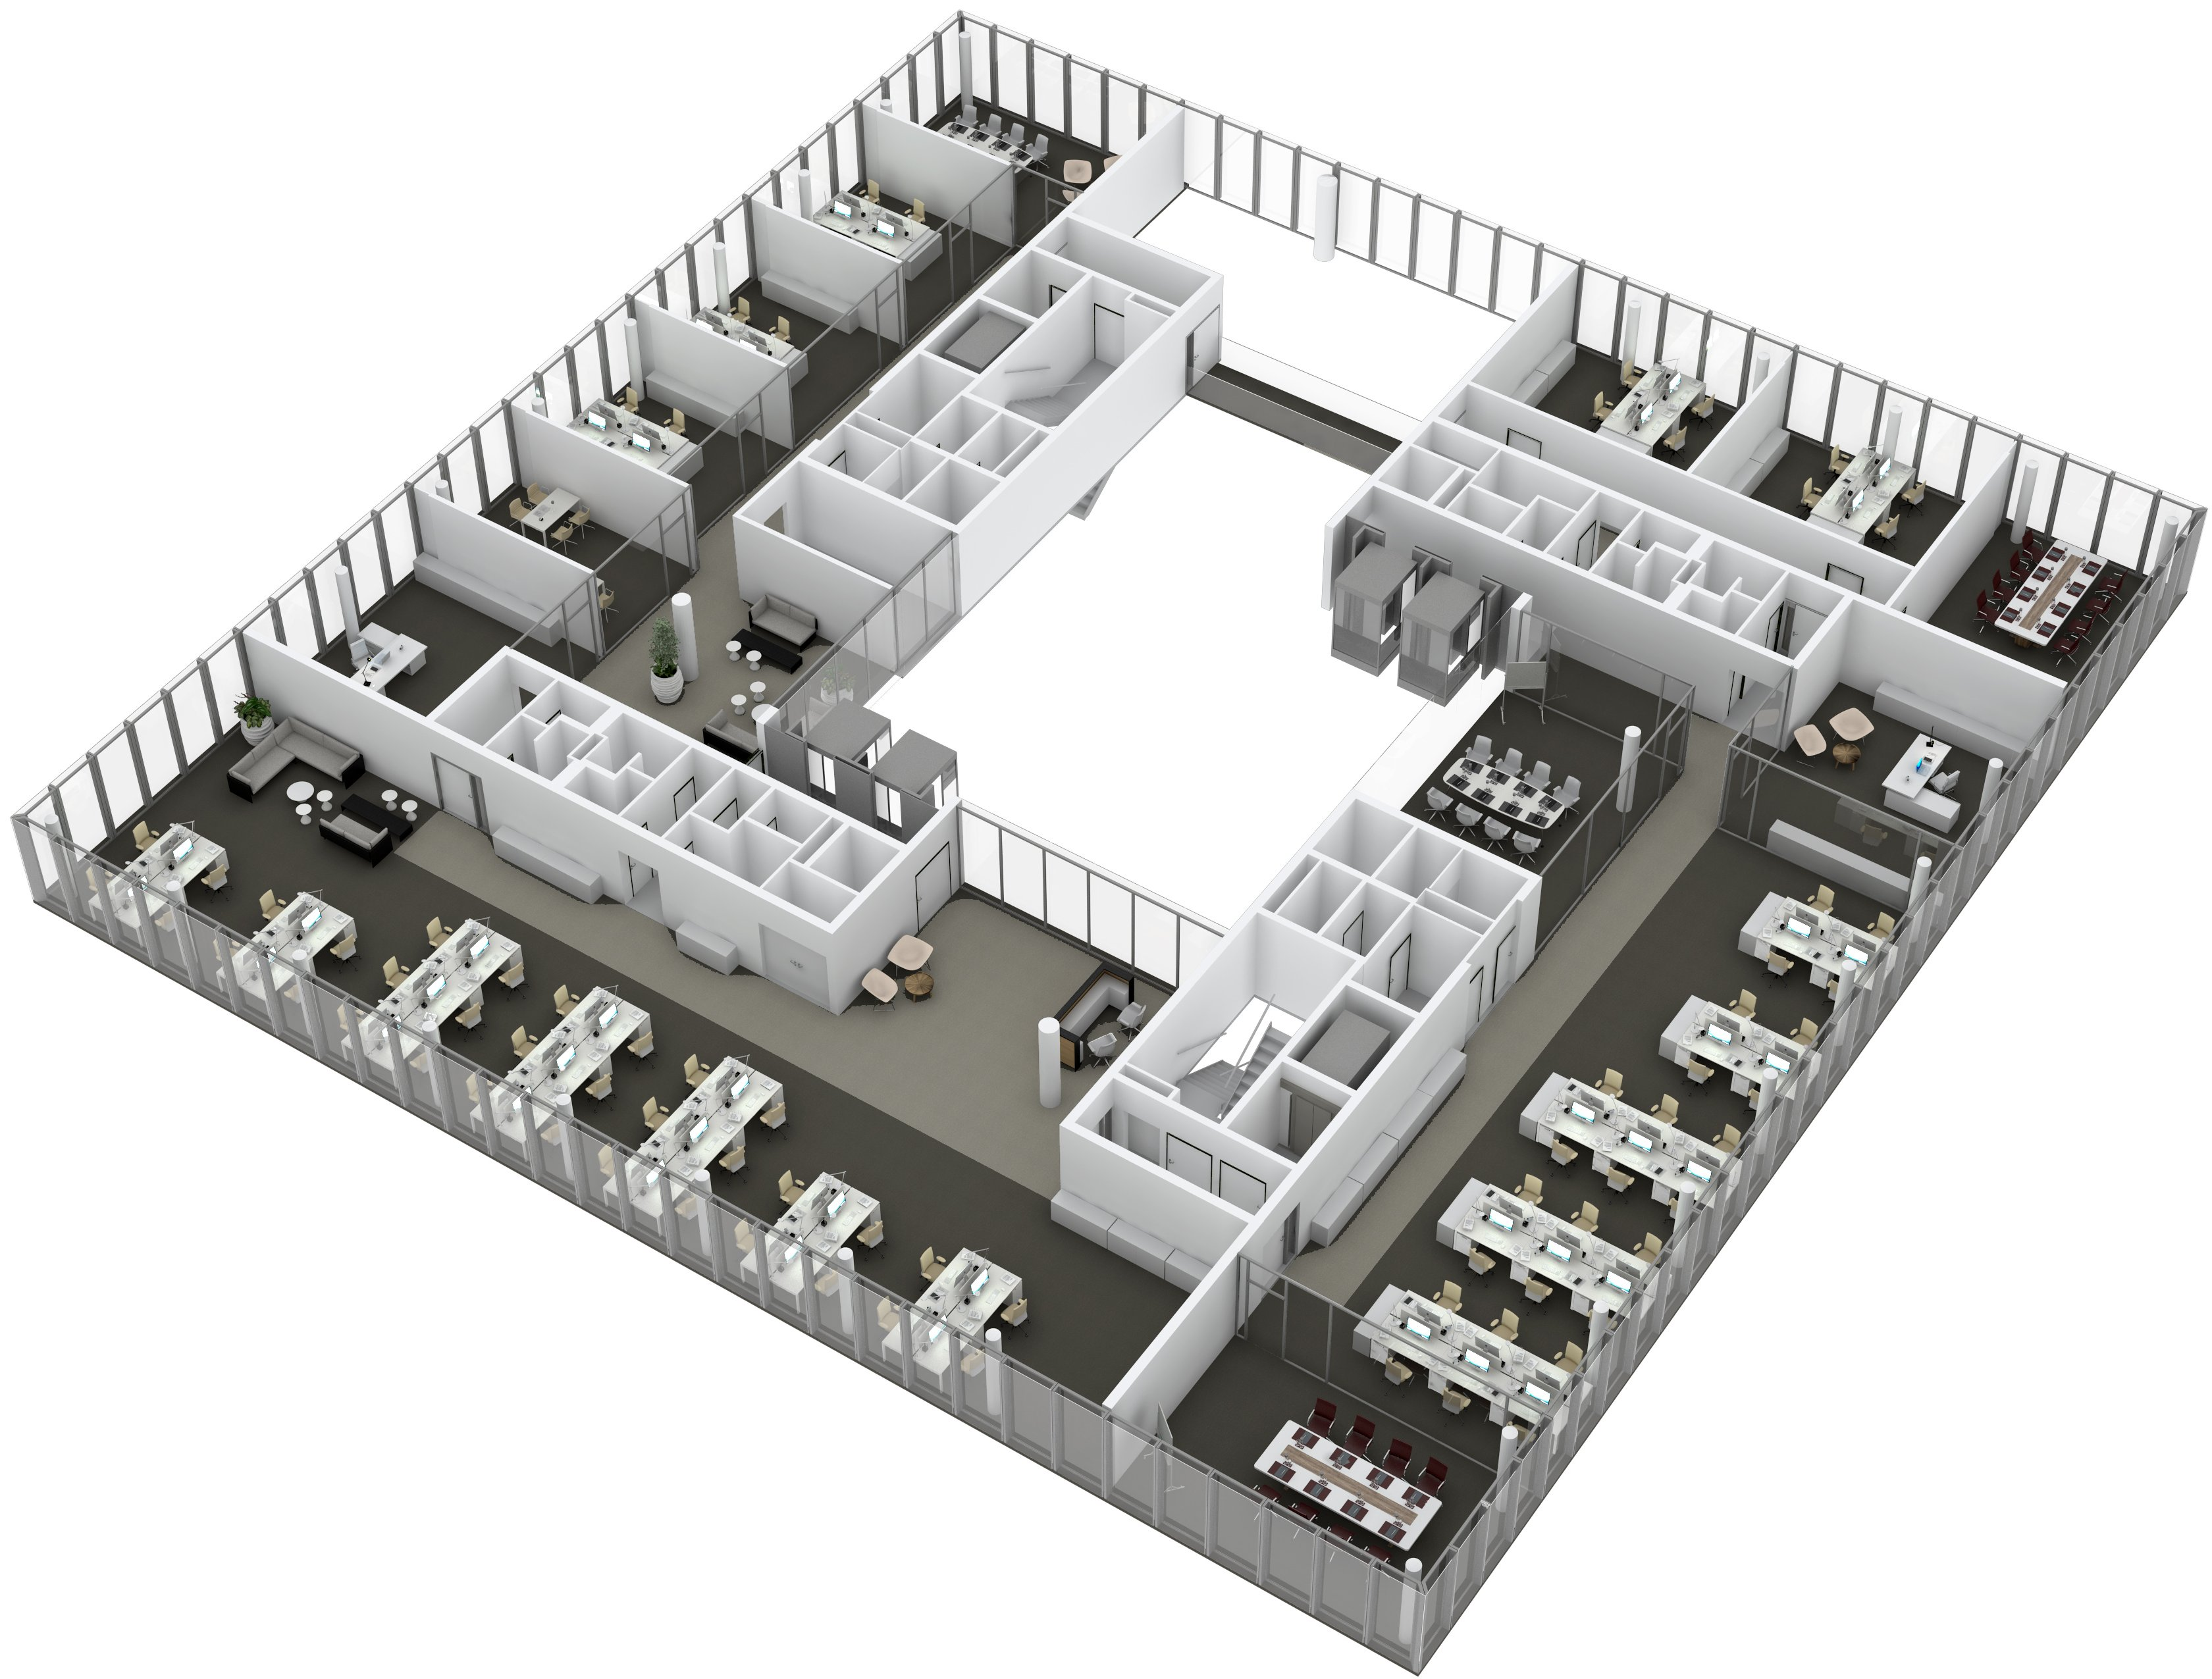 Cubus-3d-Grundriss-avpgroup